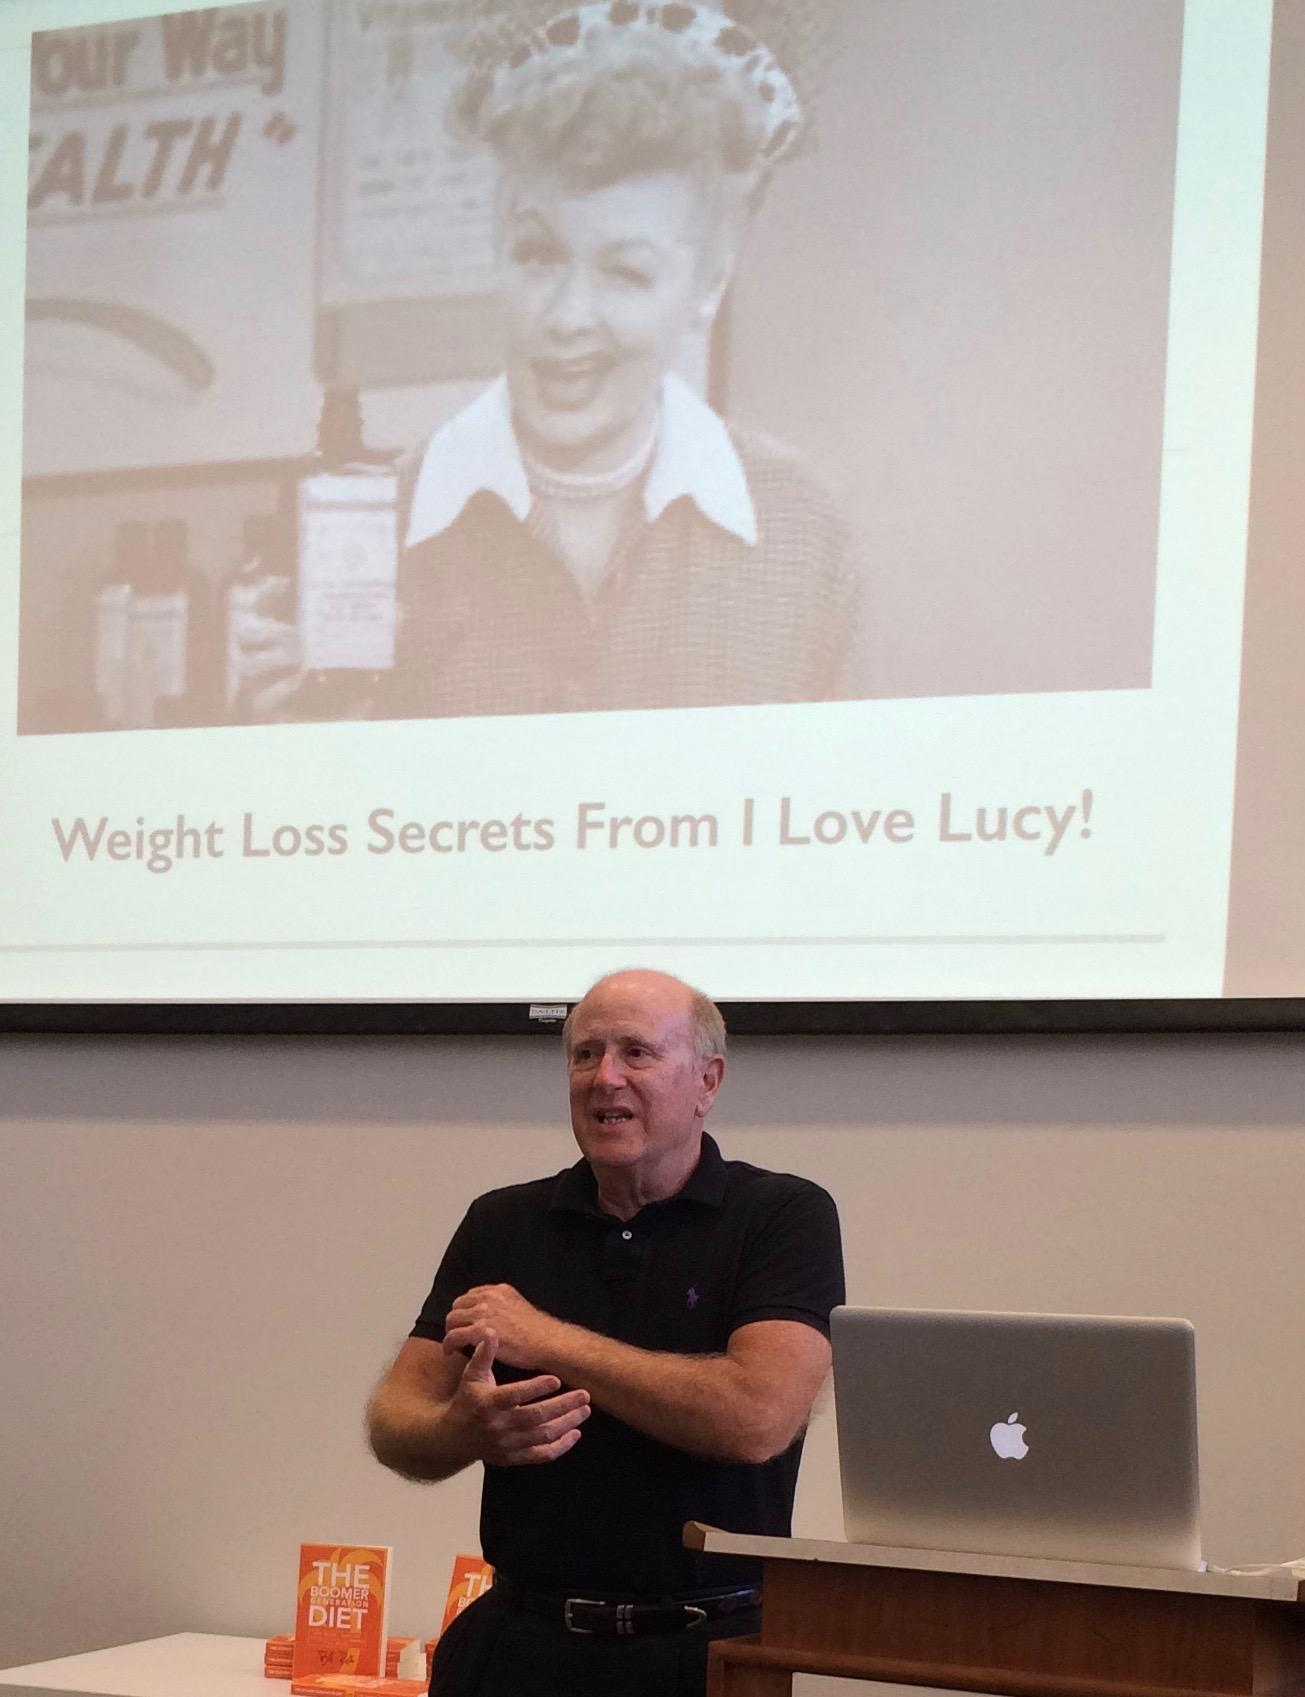 Weight Loss Secrets From I Love Lucy